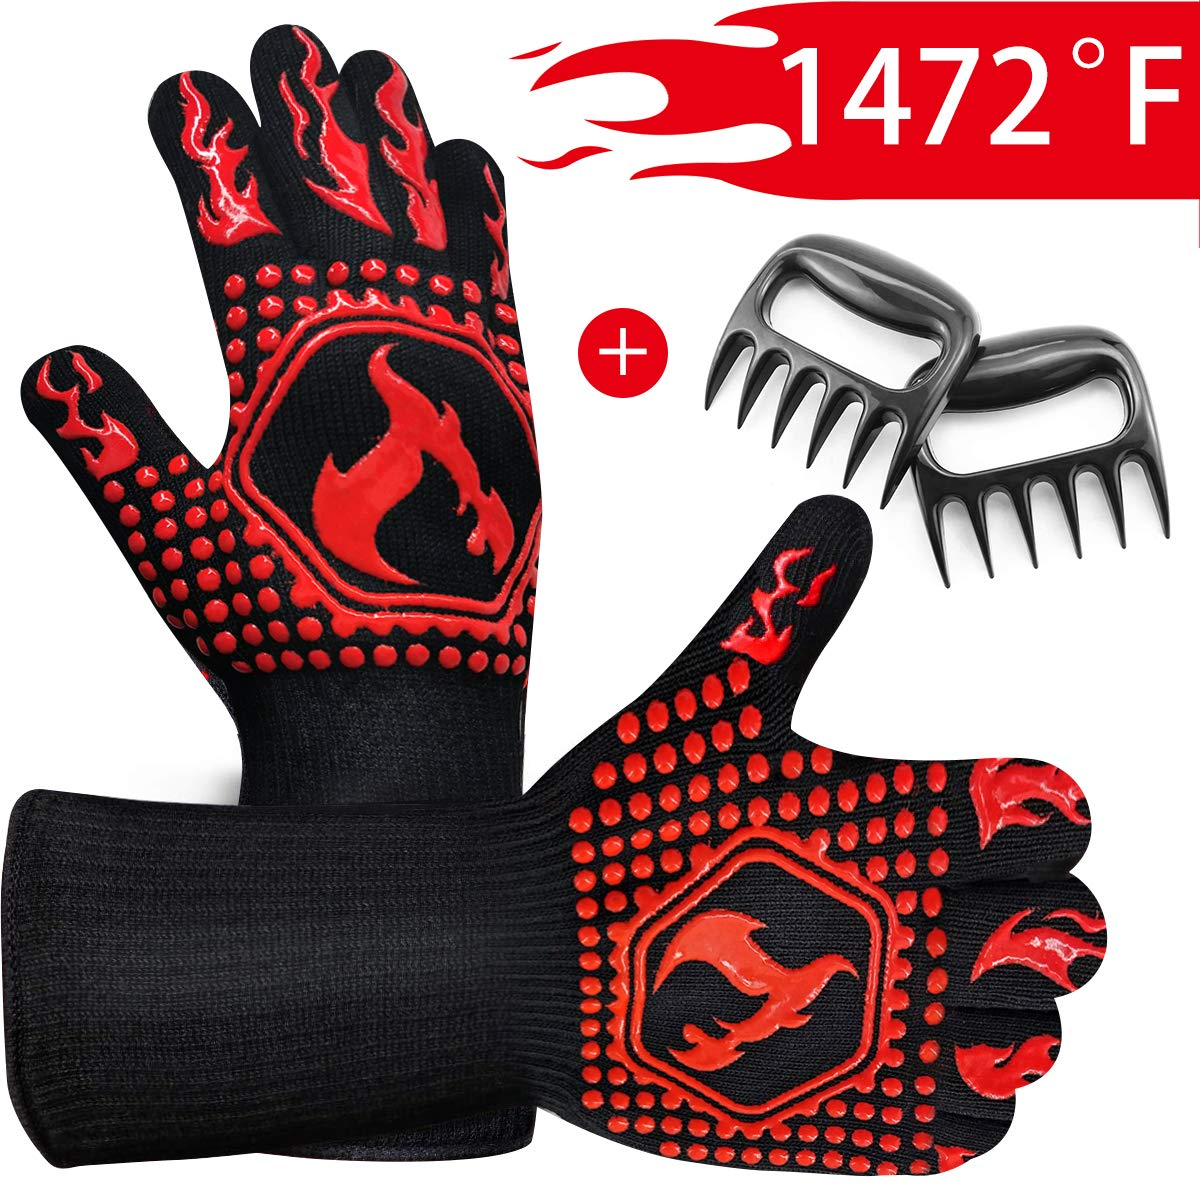 Mierting BBQ Gloves 1472℉ Extreme Heat Resistant Grill Gloves and Barbecue Claws, Food Grade Kitchen Grilling Gloves, Oven Mitts for Barbecue, Cooking, Baking, Welding, Cutting, 14 Inch